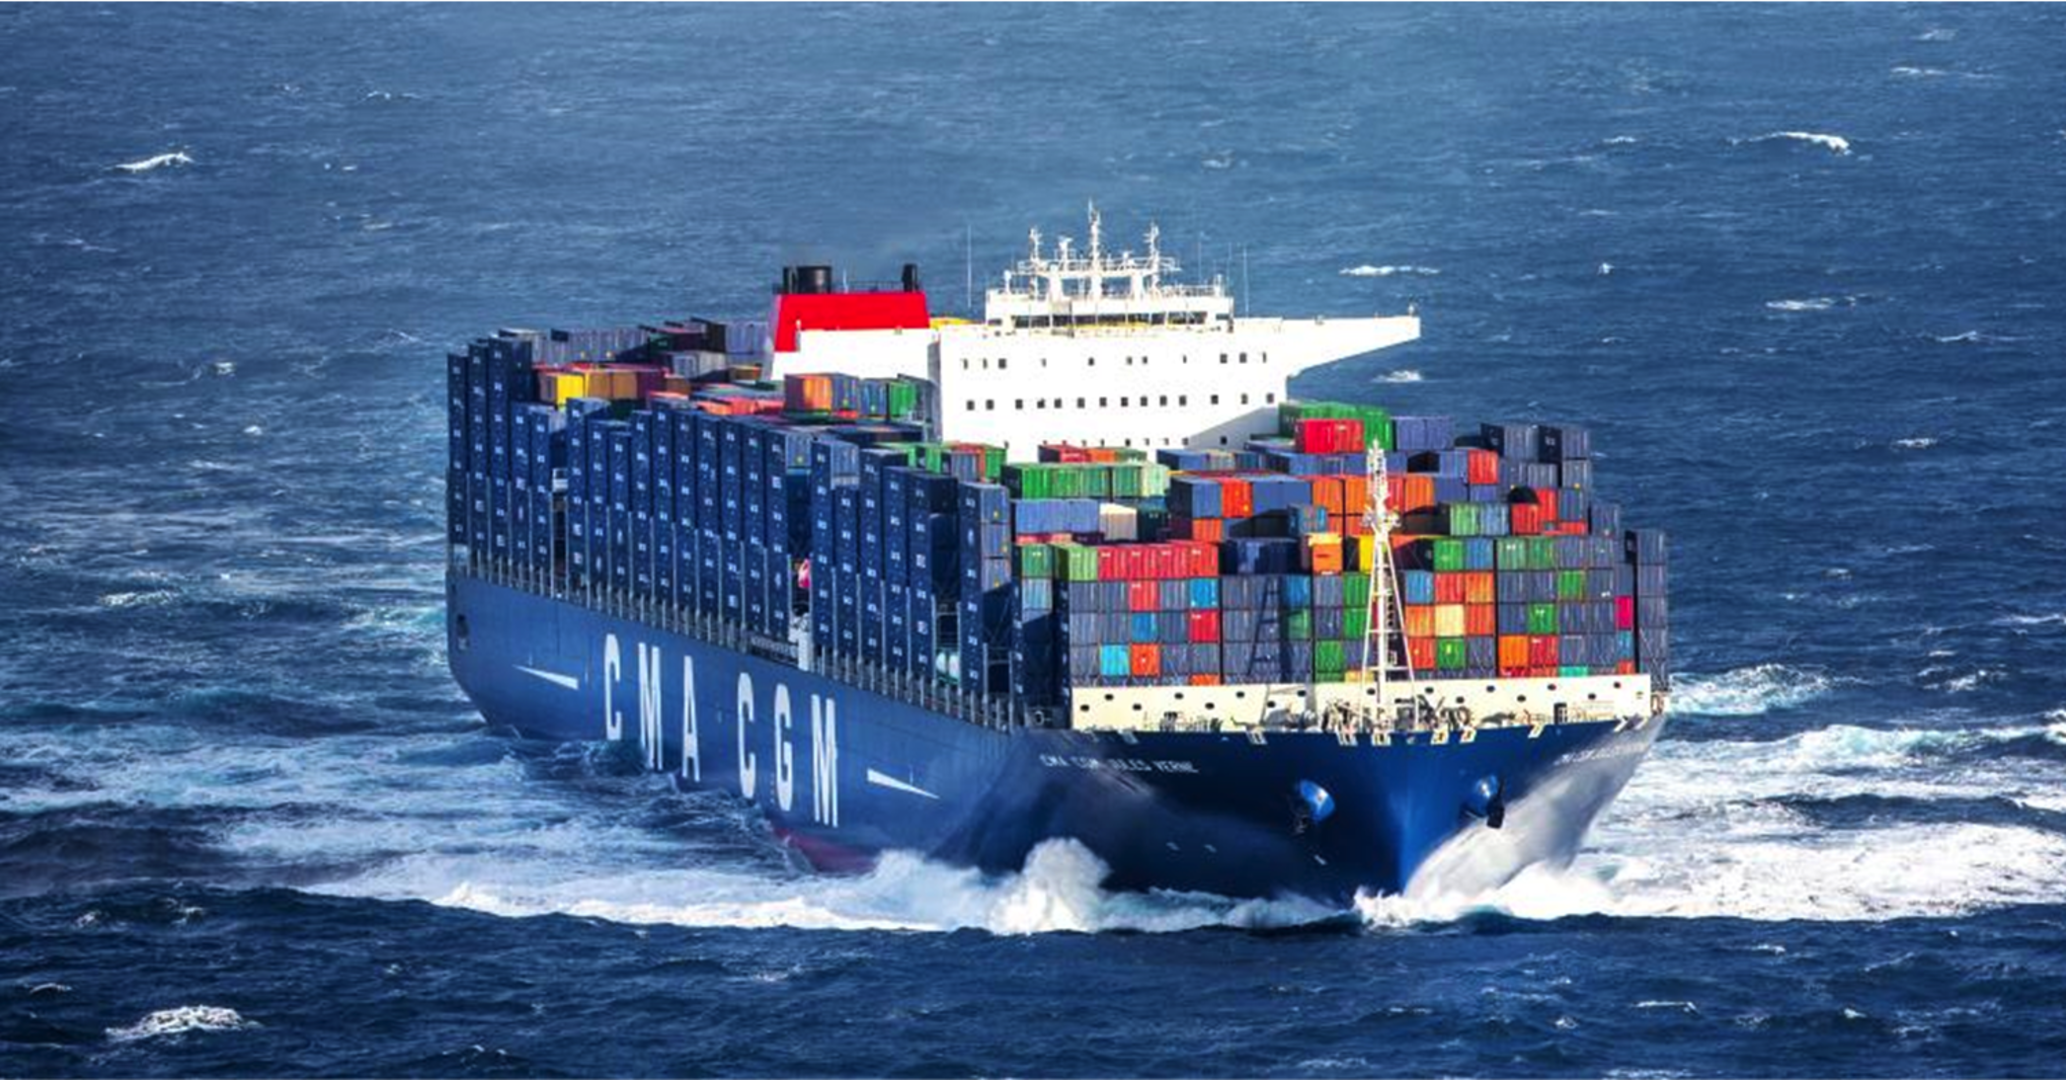 Container ship on passage